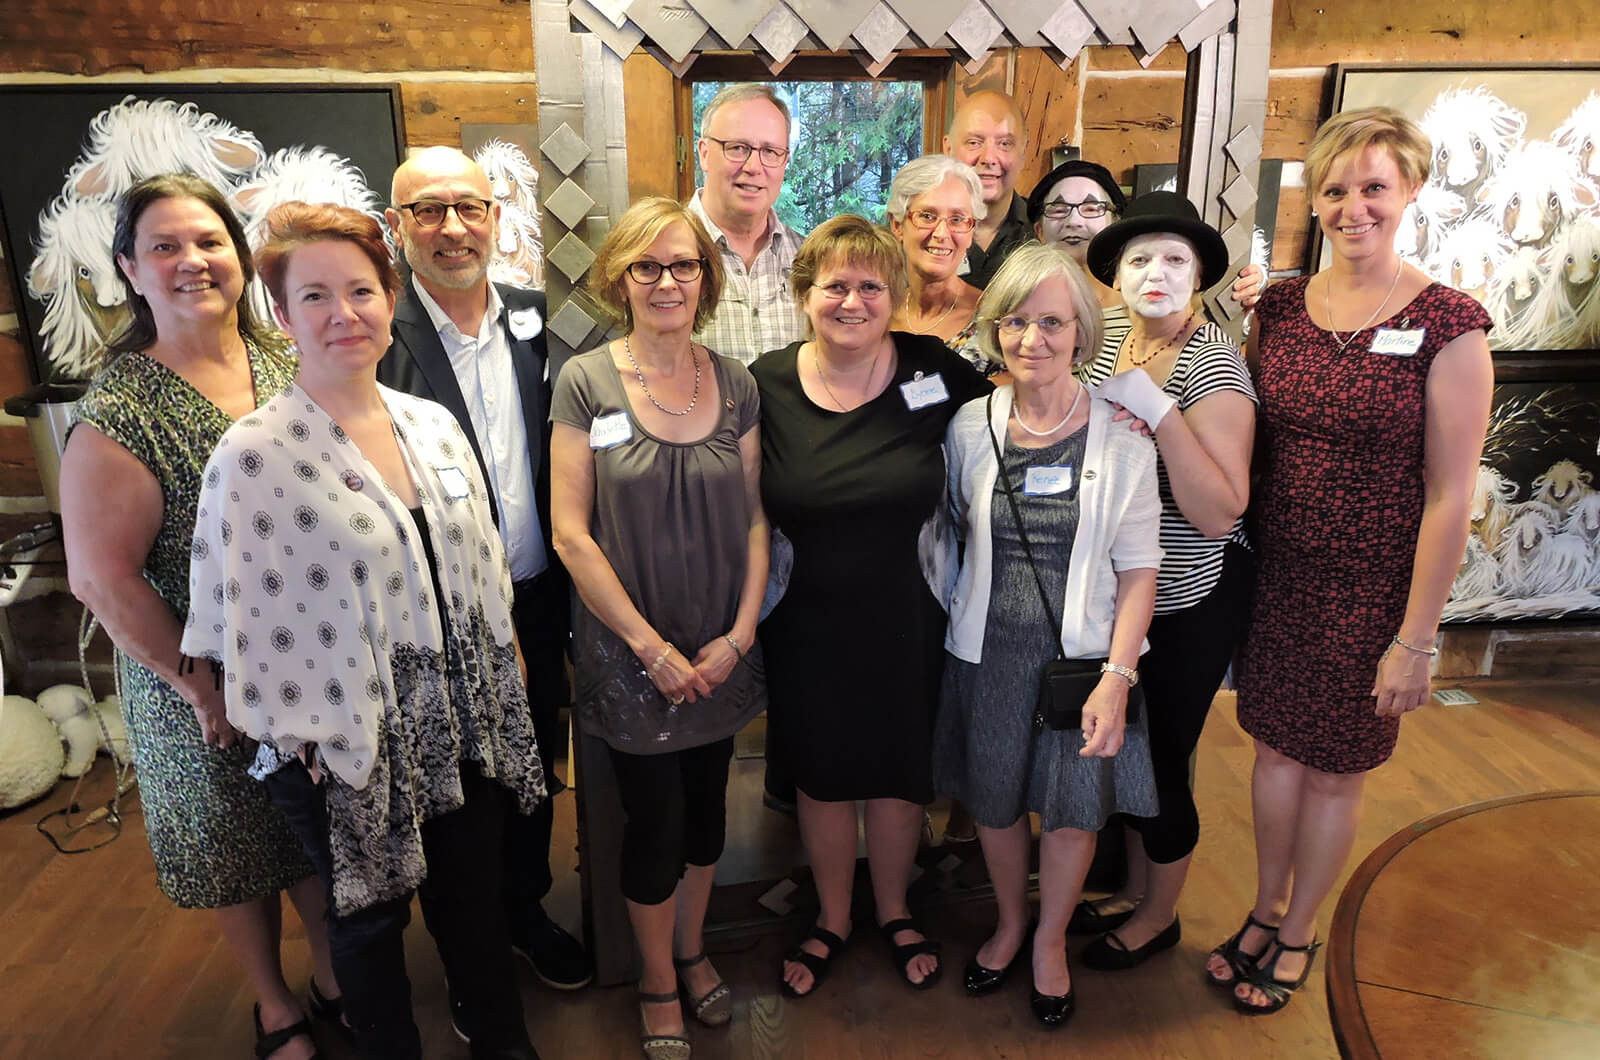 Members of Toastmasters des Laurentides club in Quebec, Canada, host an open house in the Art Gallery Béliveau for their 15th anniversary.